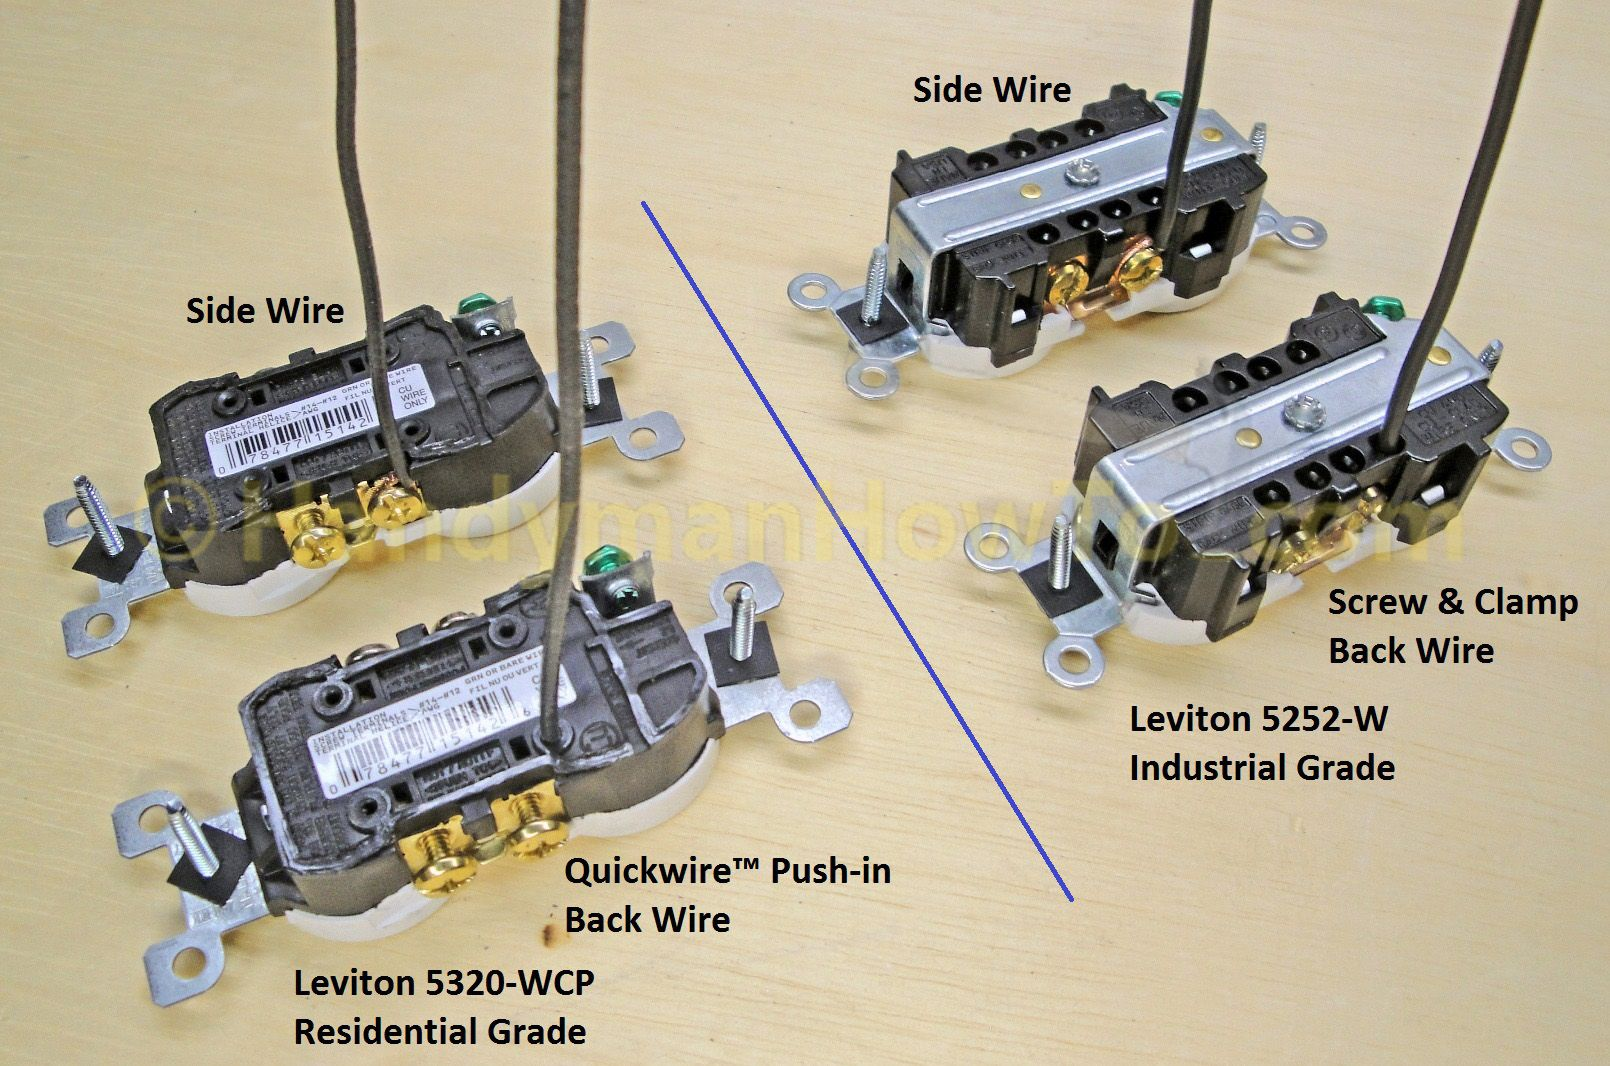 A comparison of the pros and cons between the side wire, back wire ...